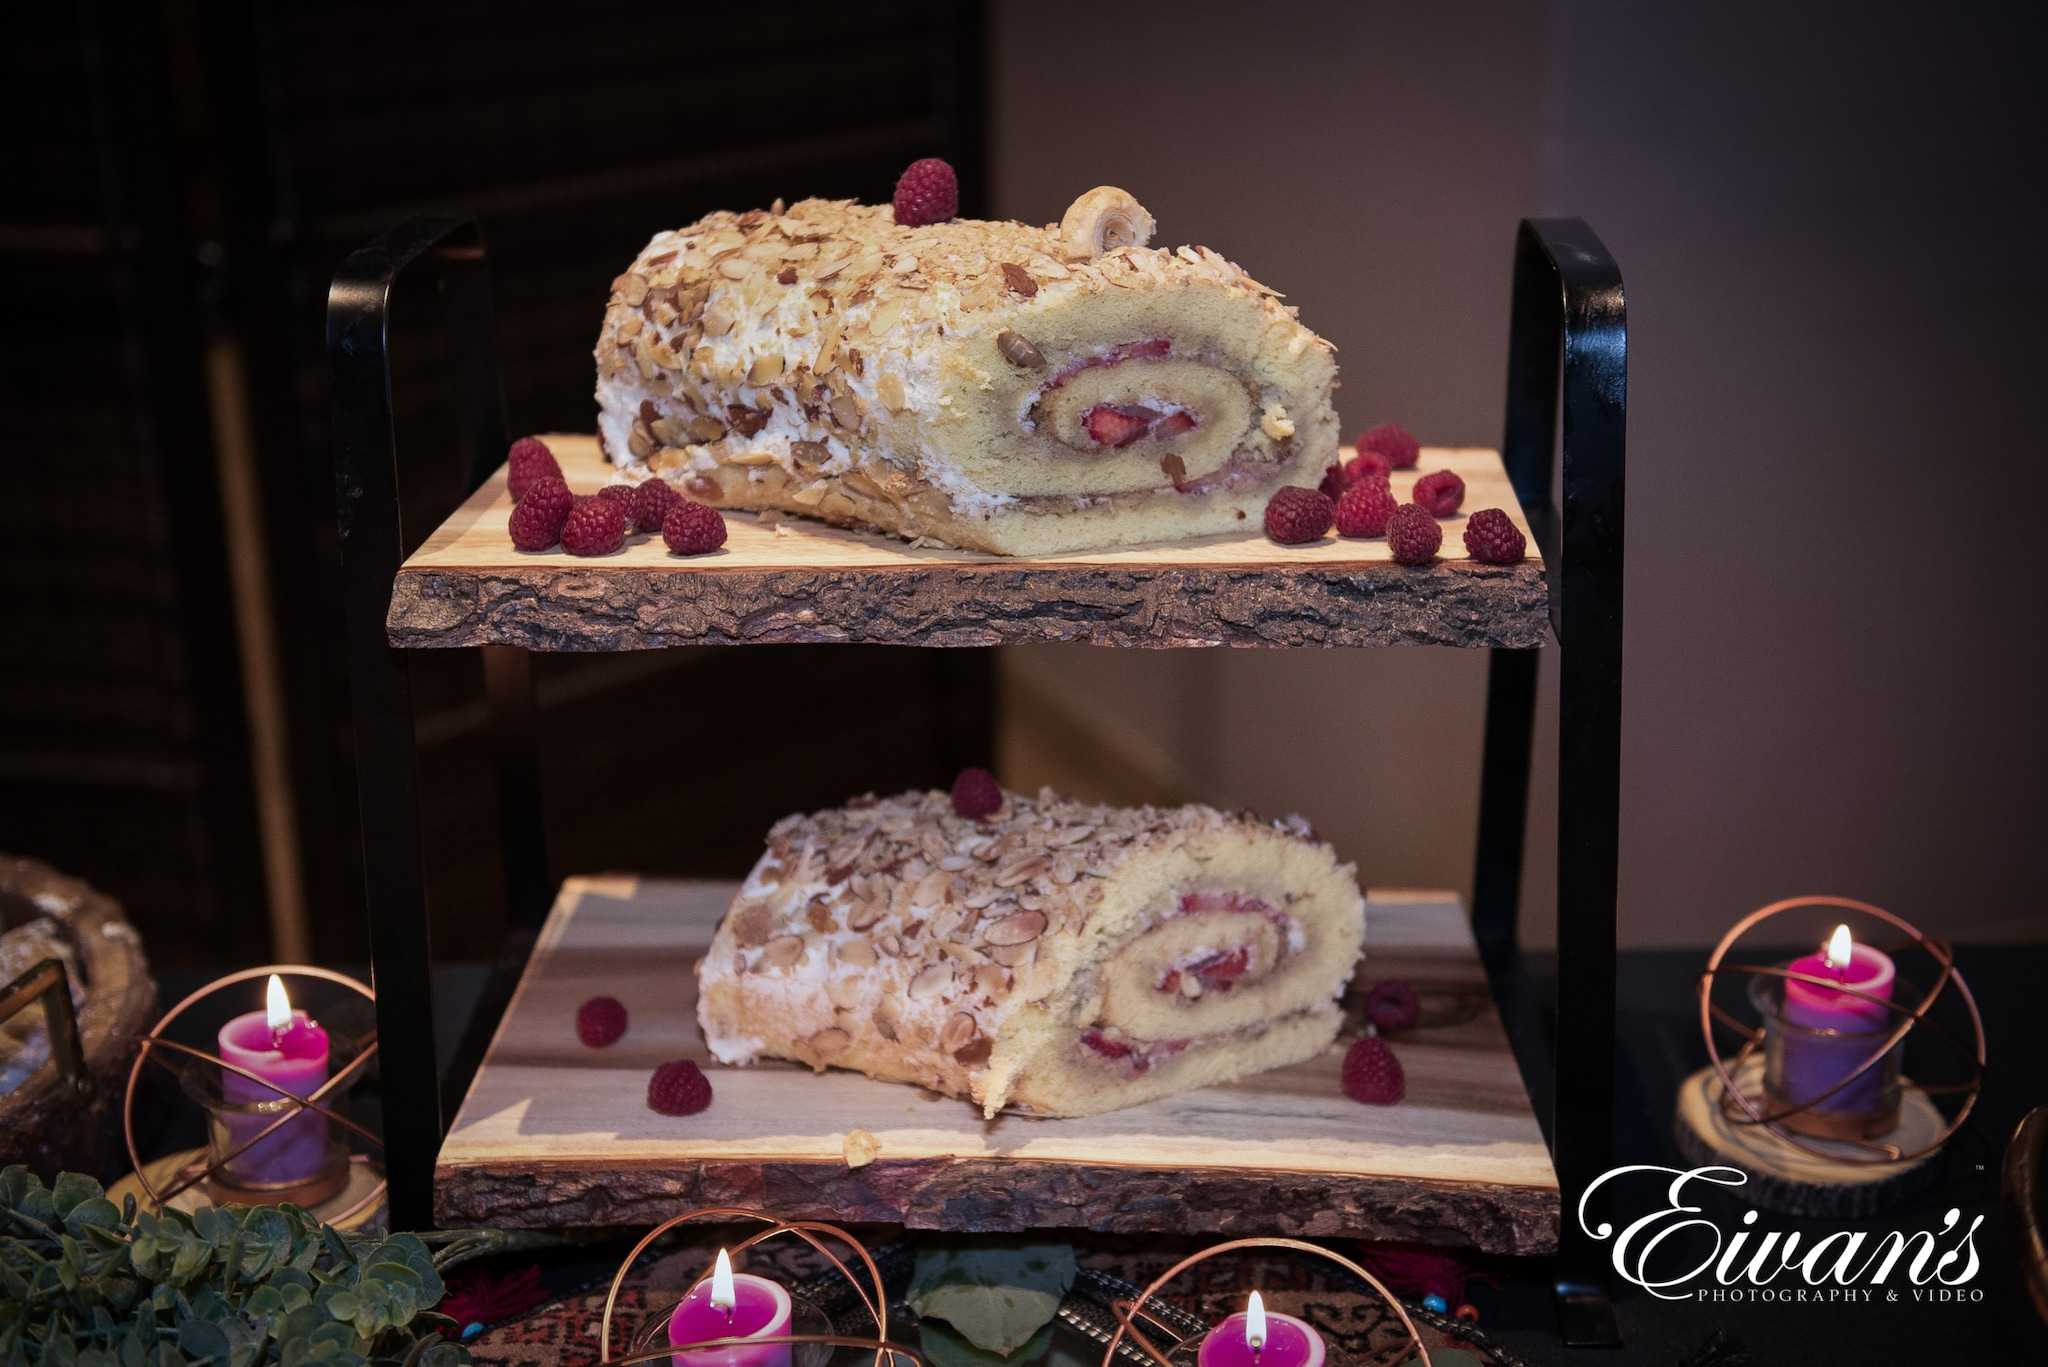 image of a log cake